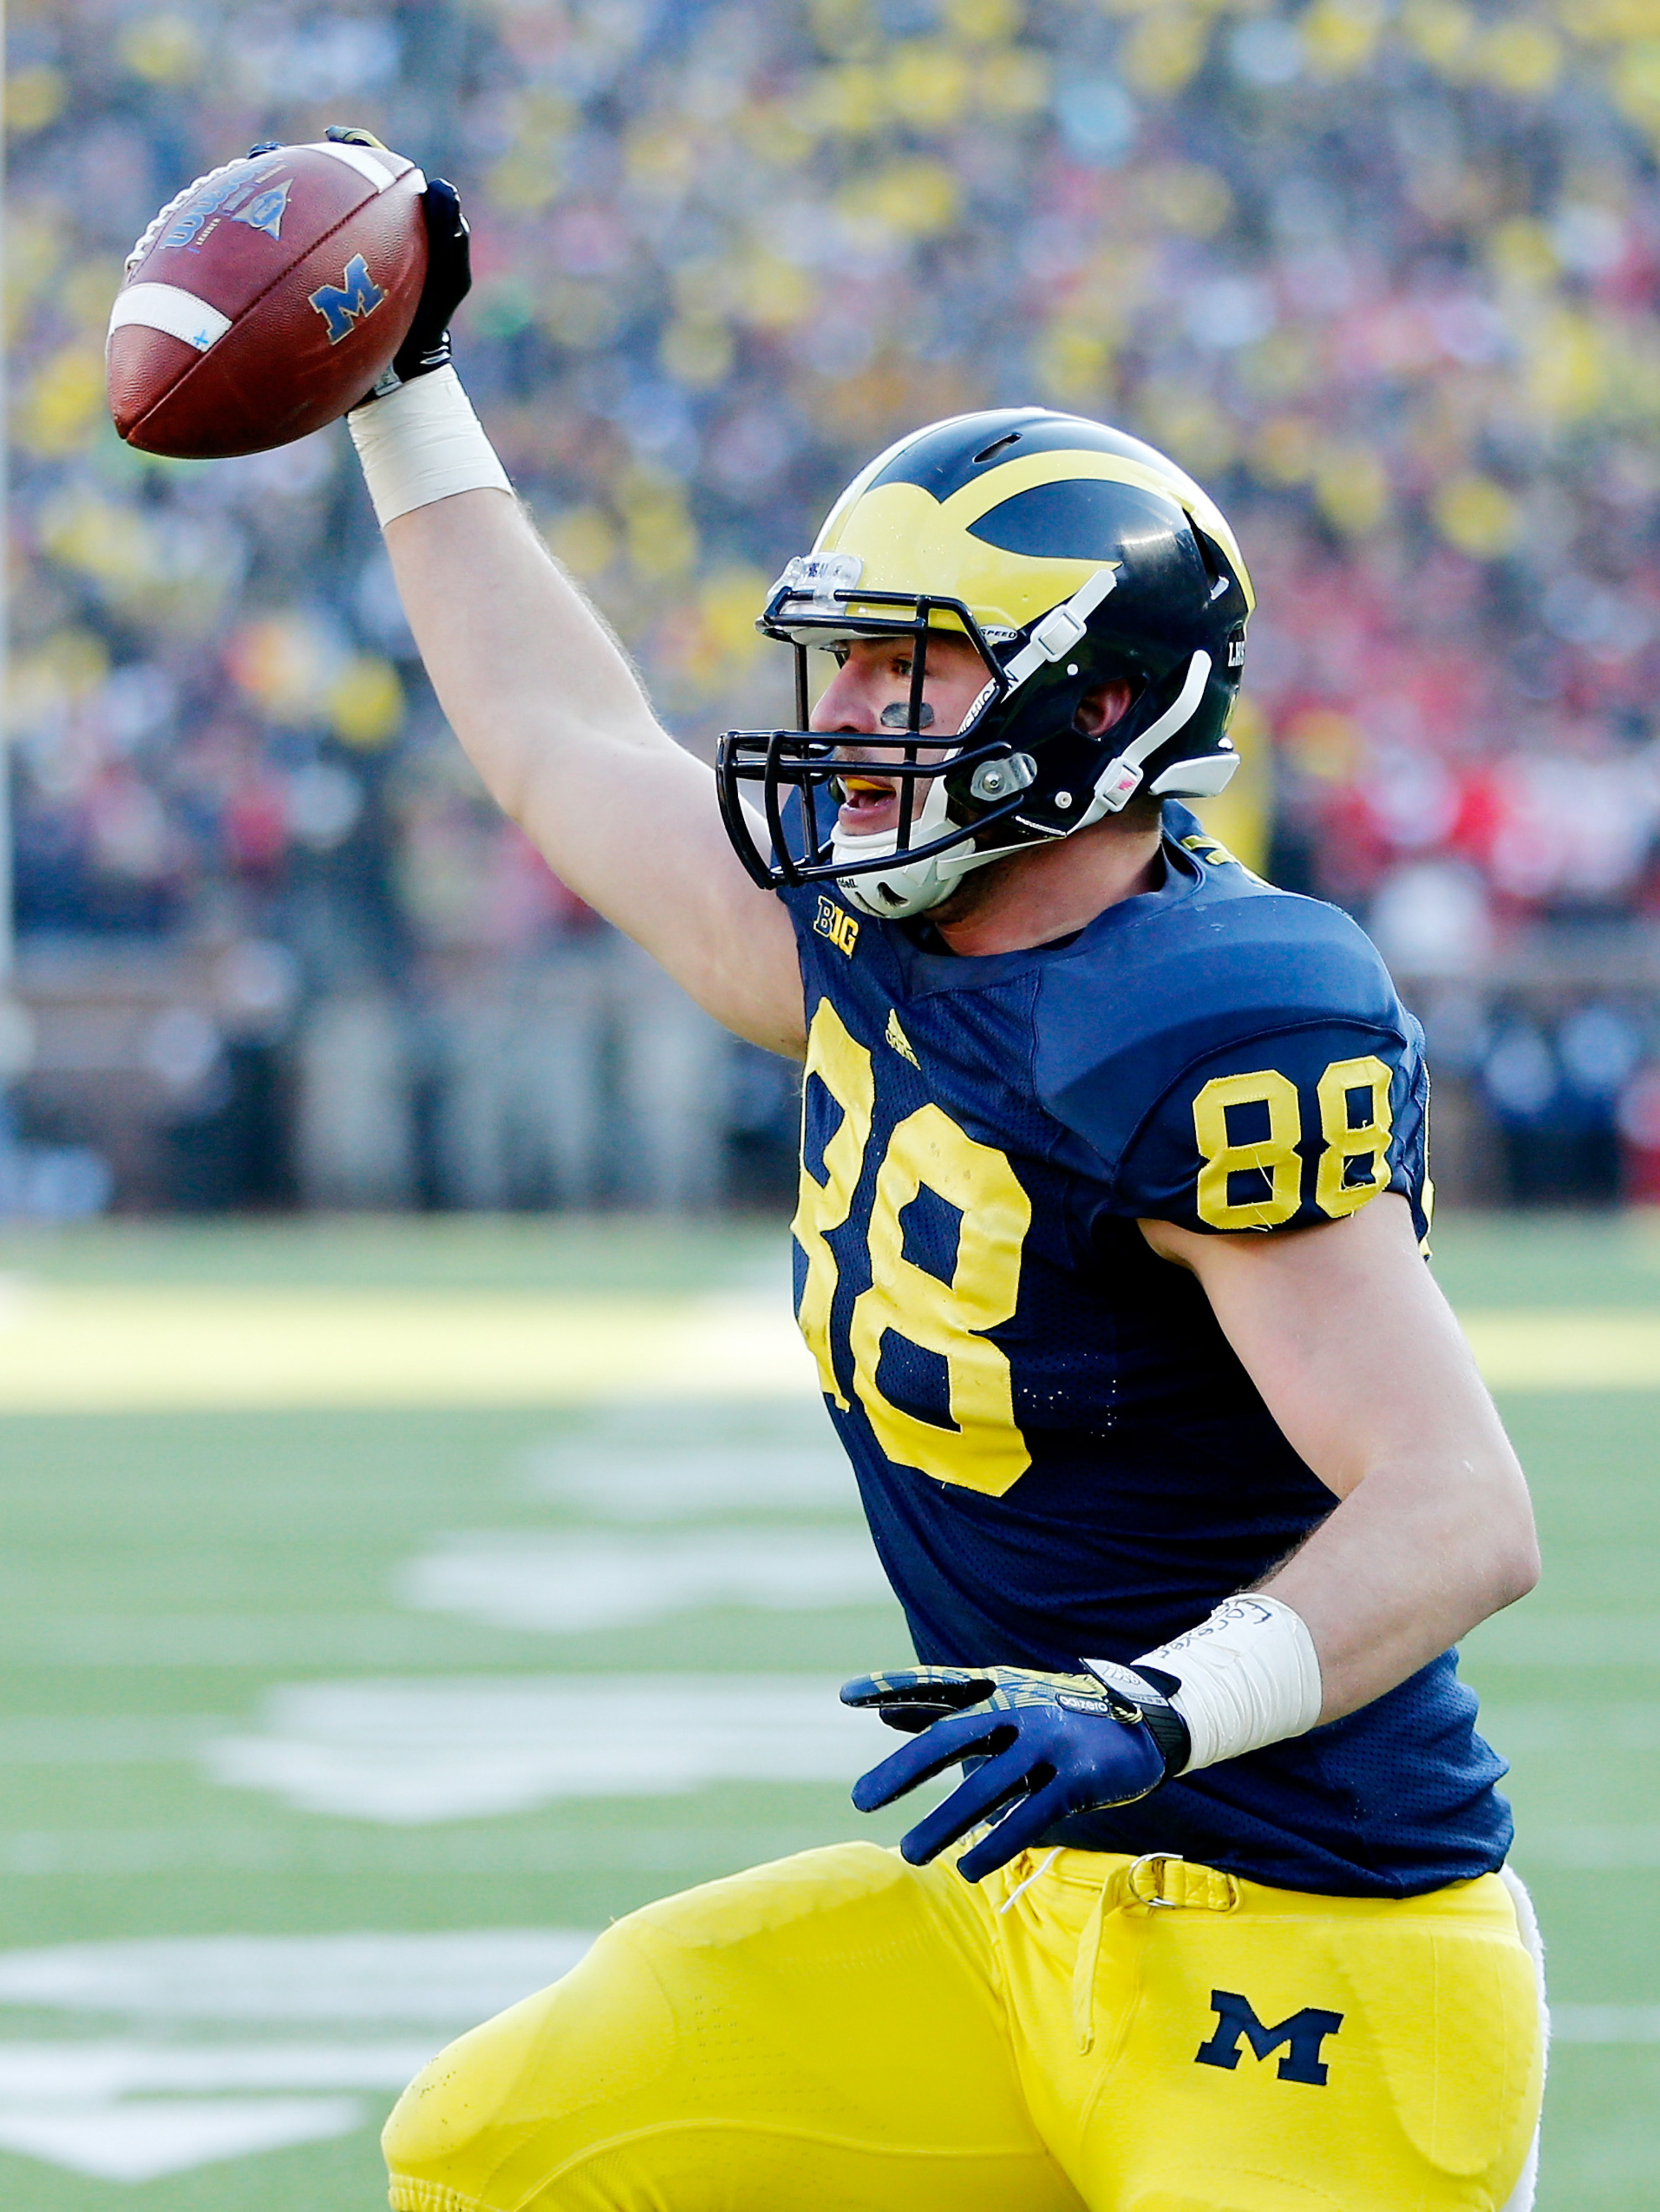 Chris Clark may be similar to current Wolverine Jake Butt (#88).